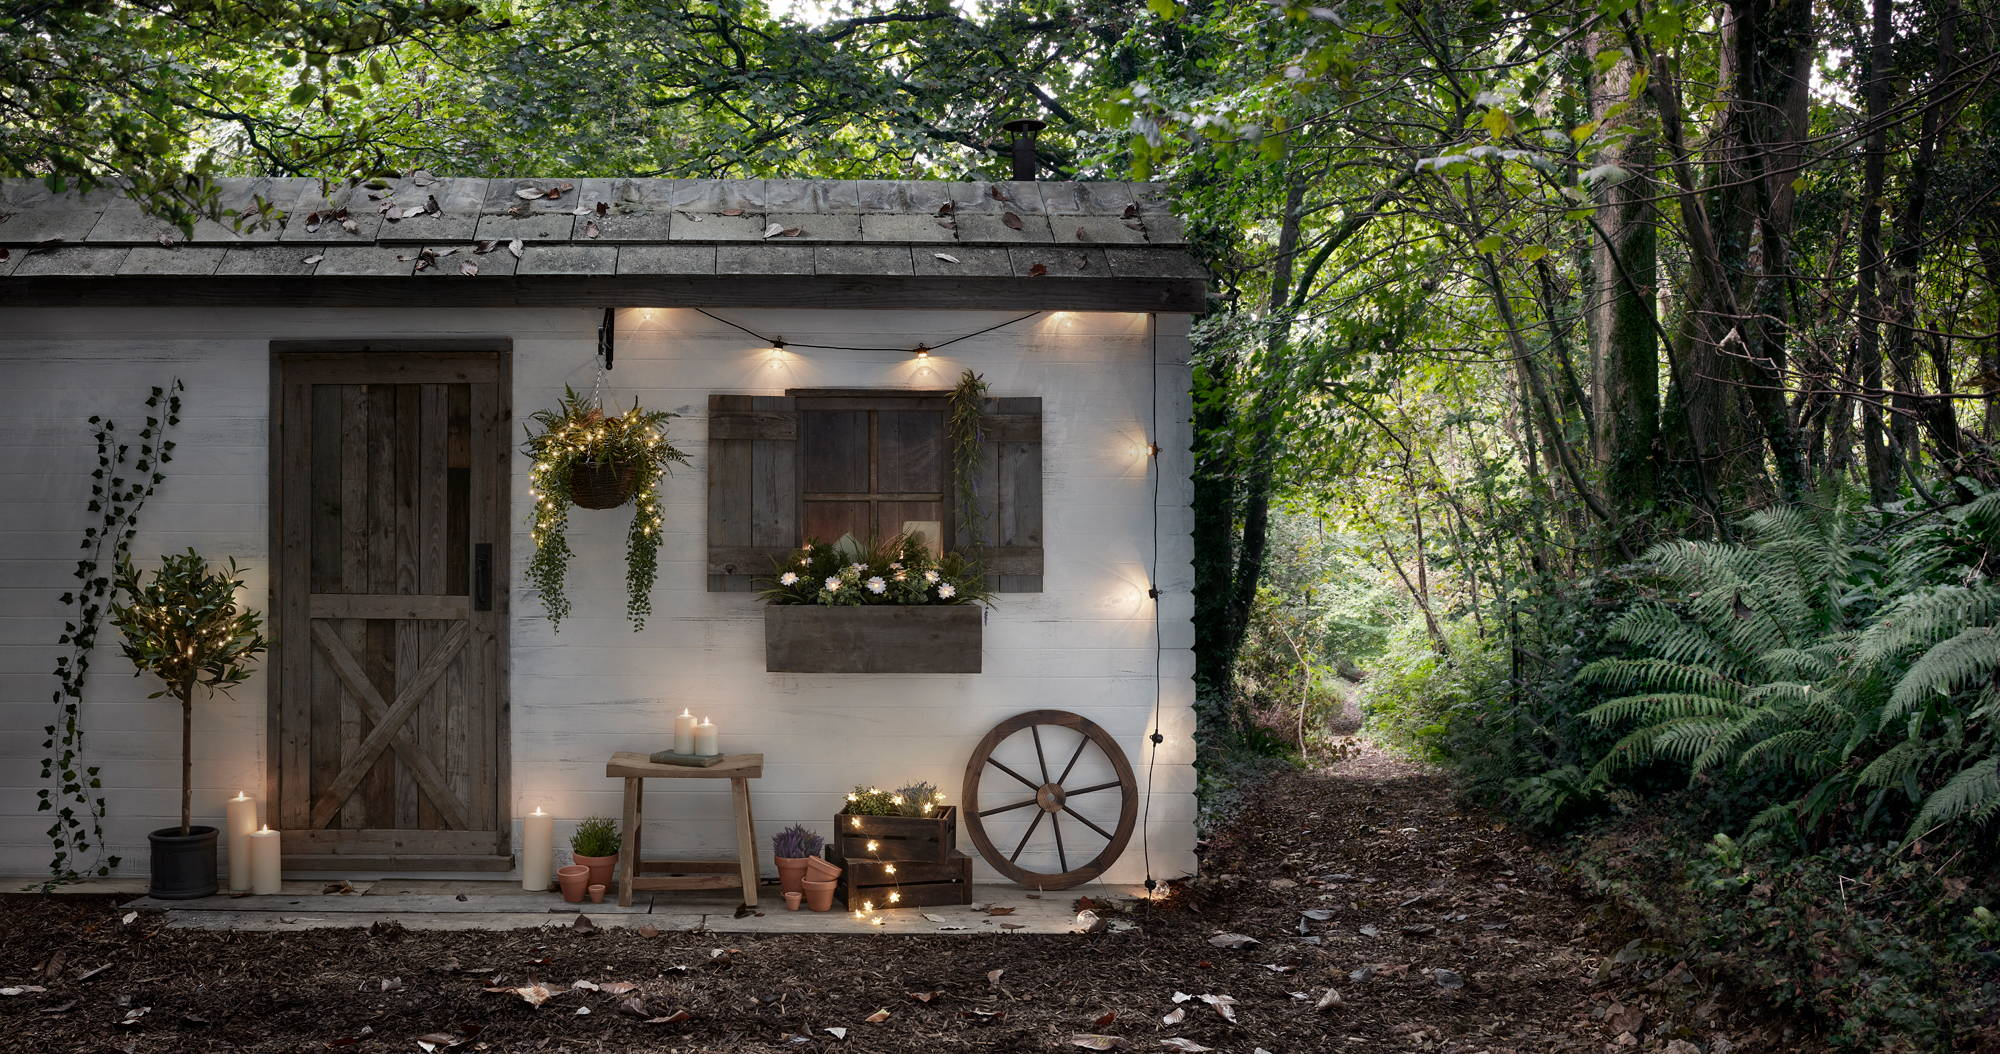 Woodland cabin setting with festoon lights, fairy lights and outdoor candles displayed